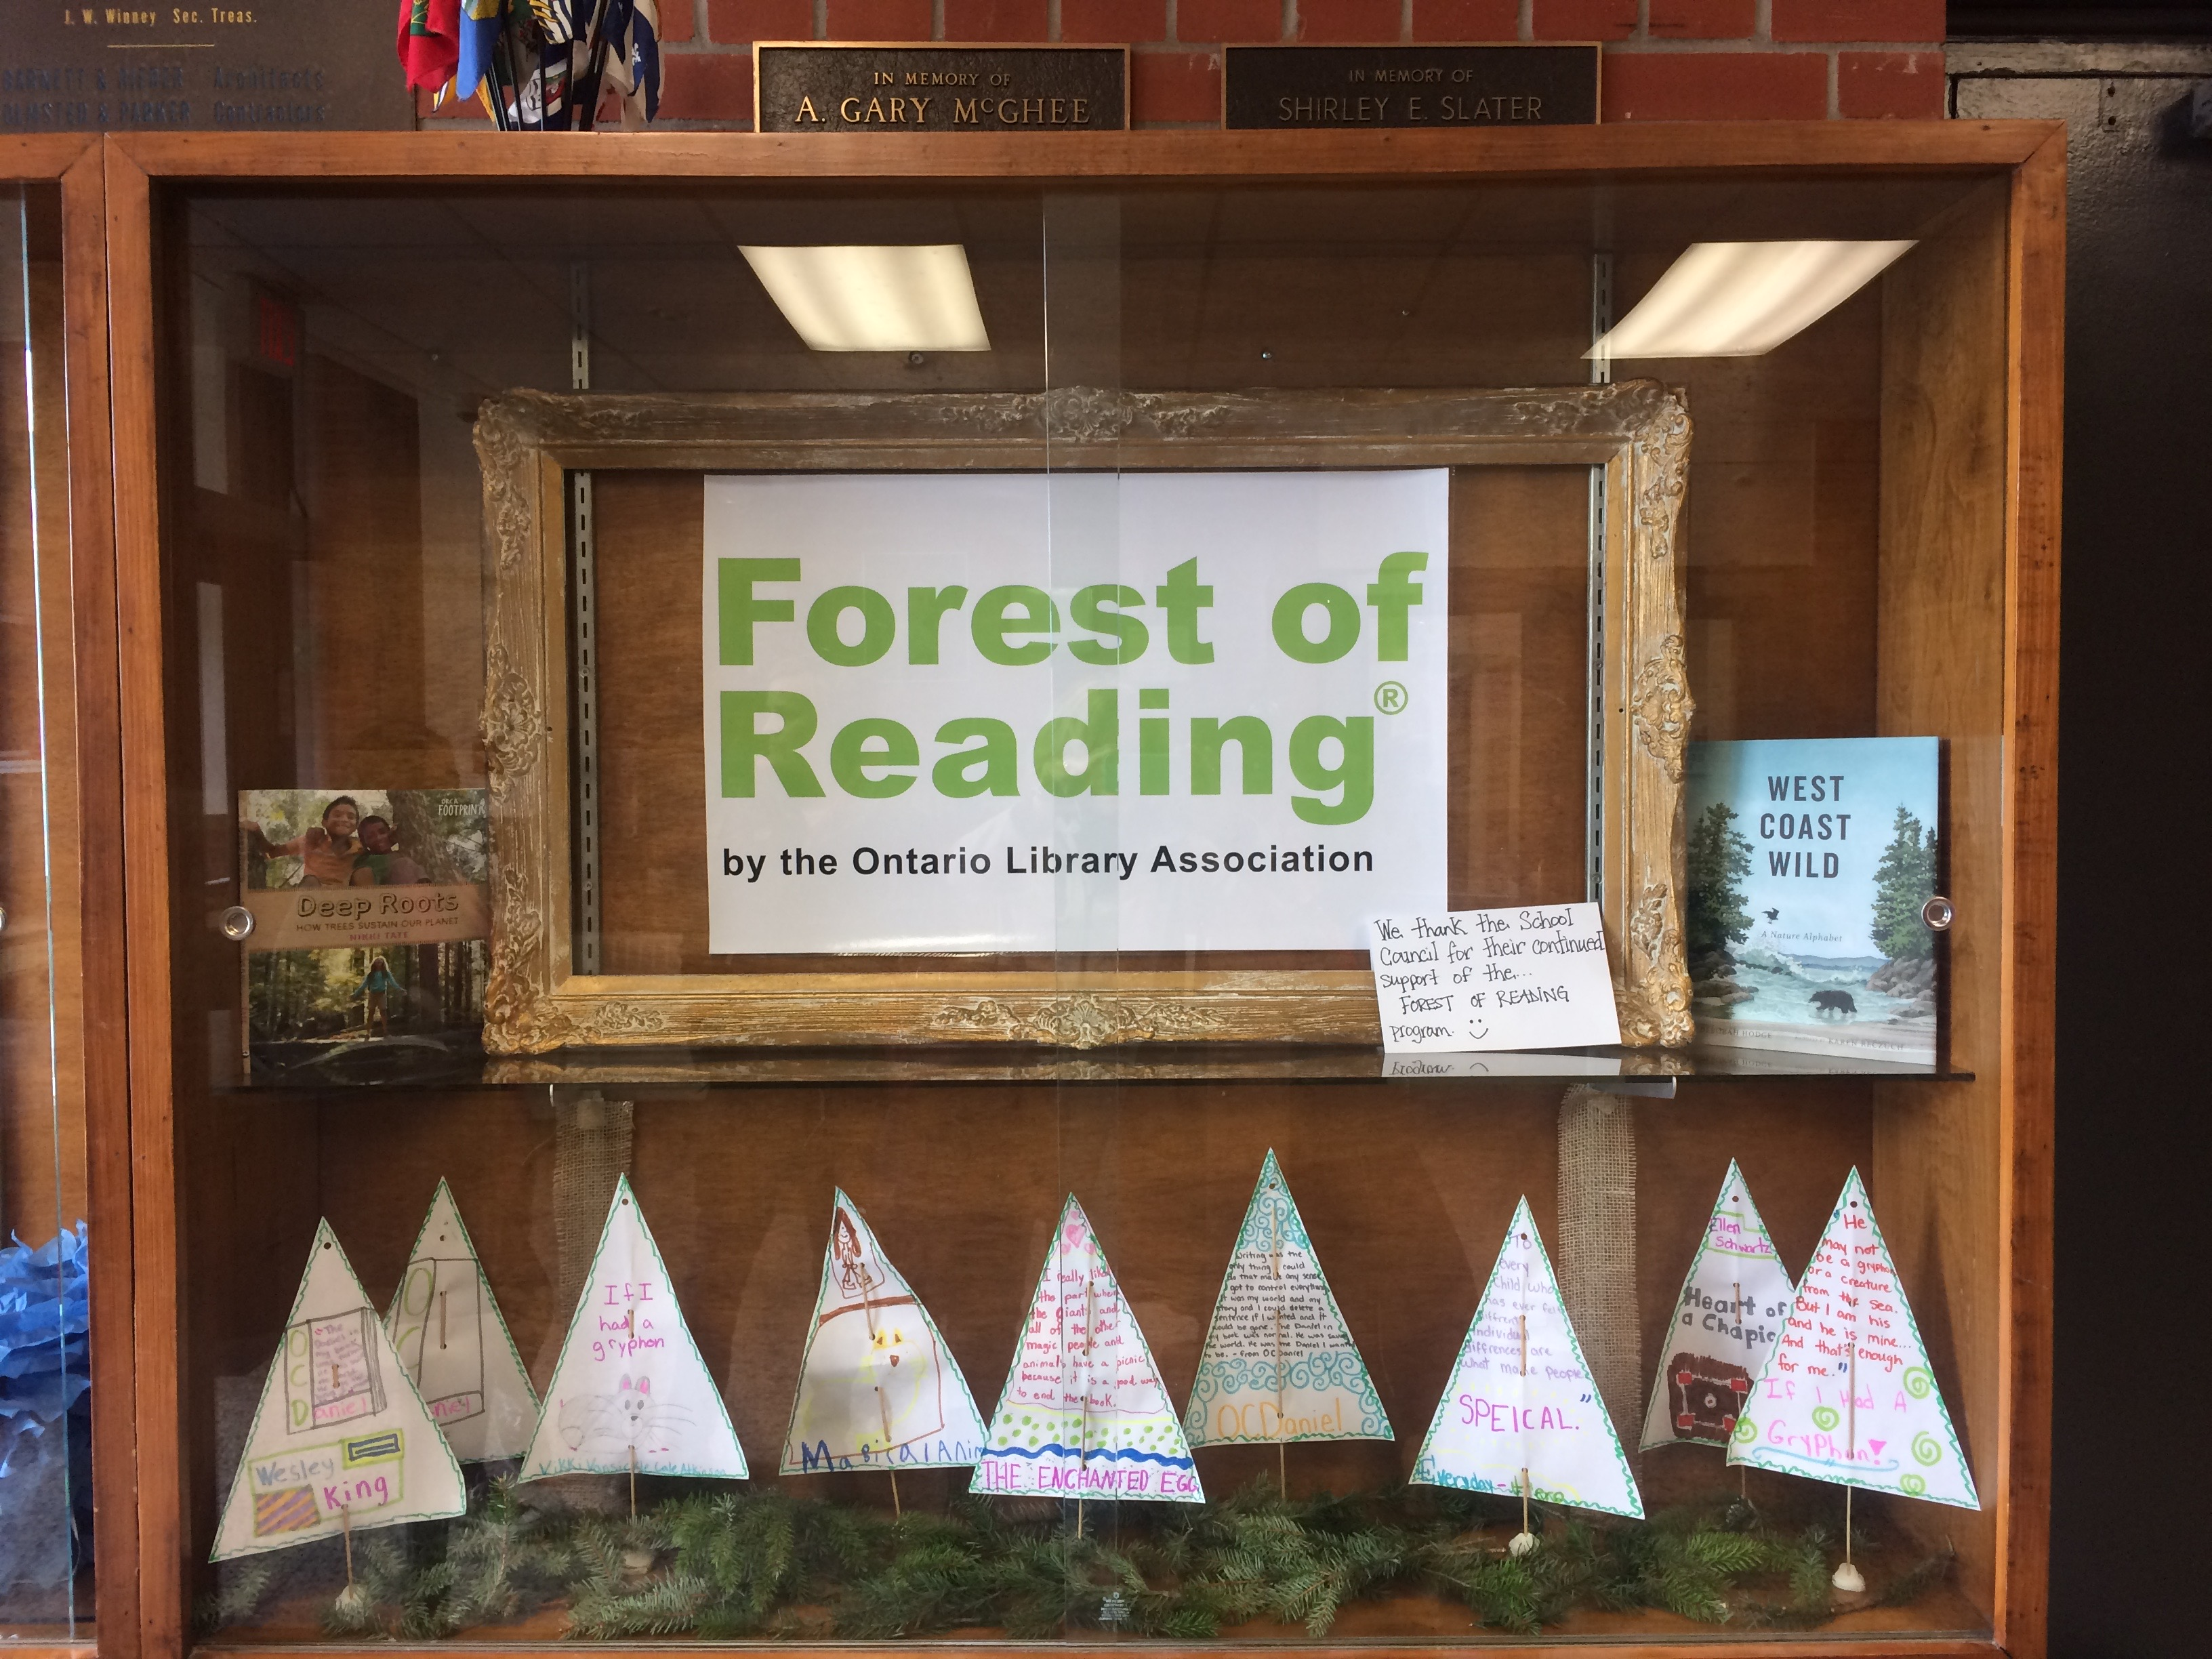 display case with Forest of Reading banner and trees